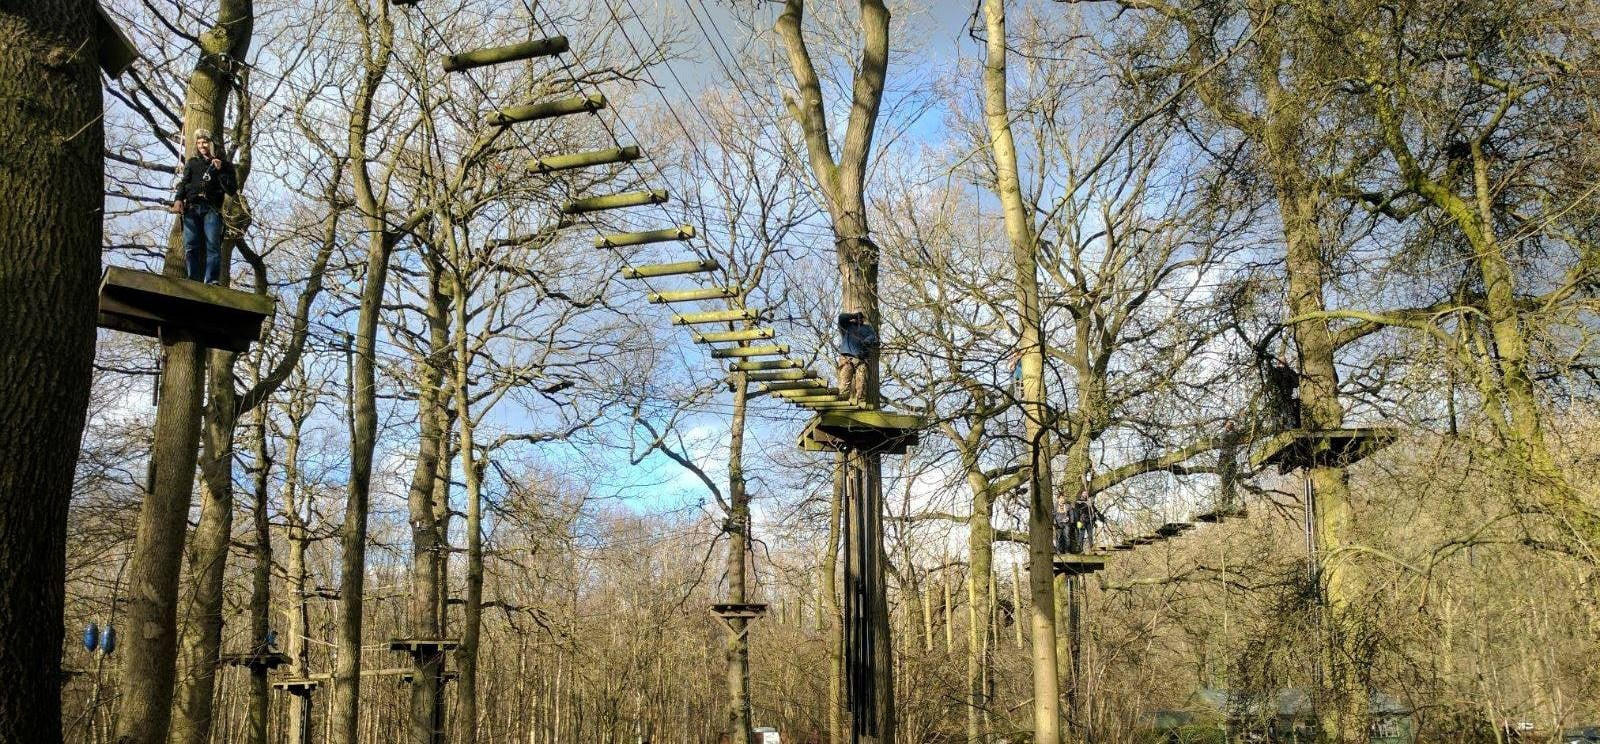 Child High Ropes Course - Nationwide-1